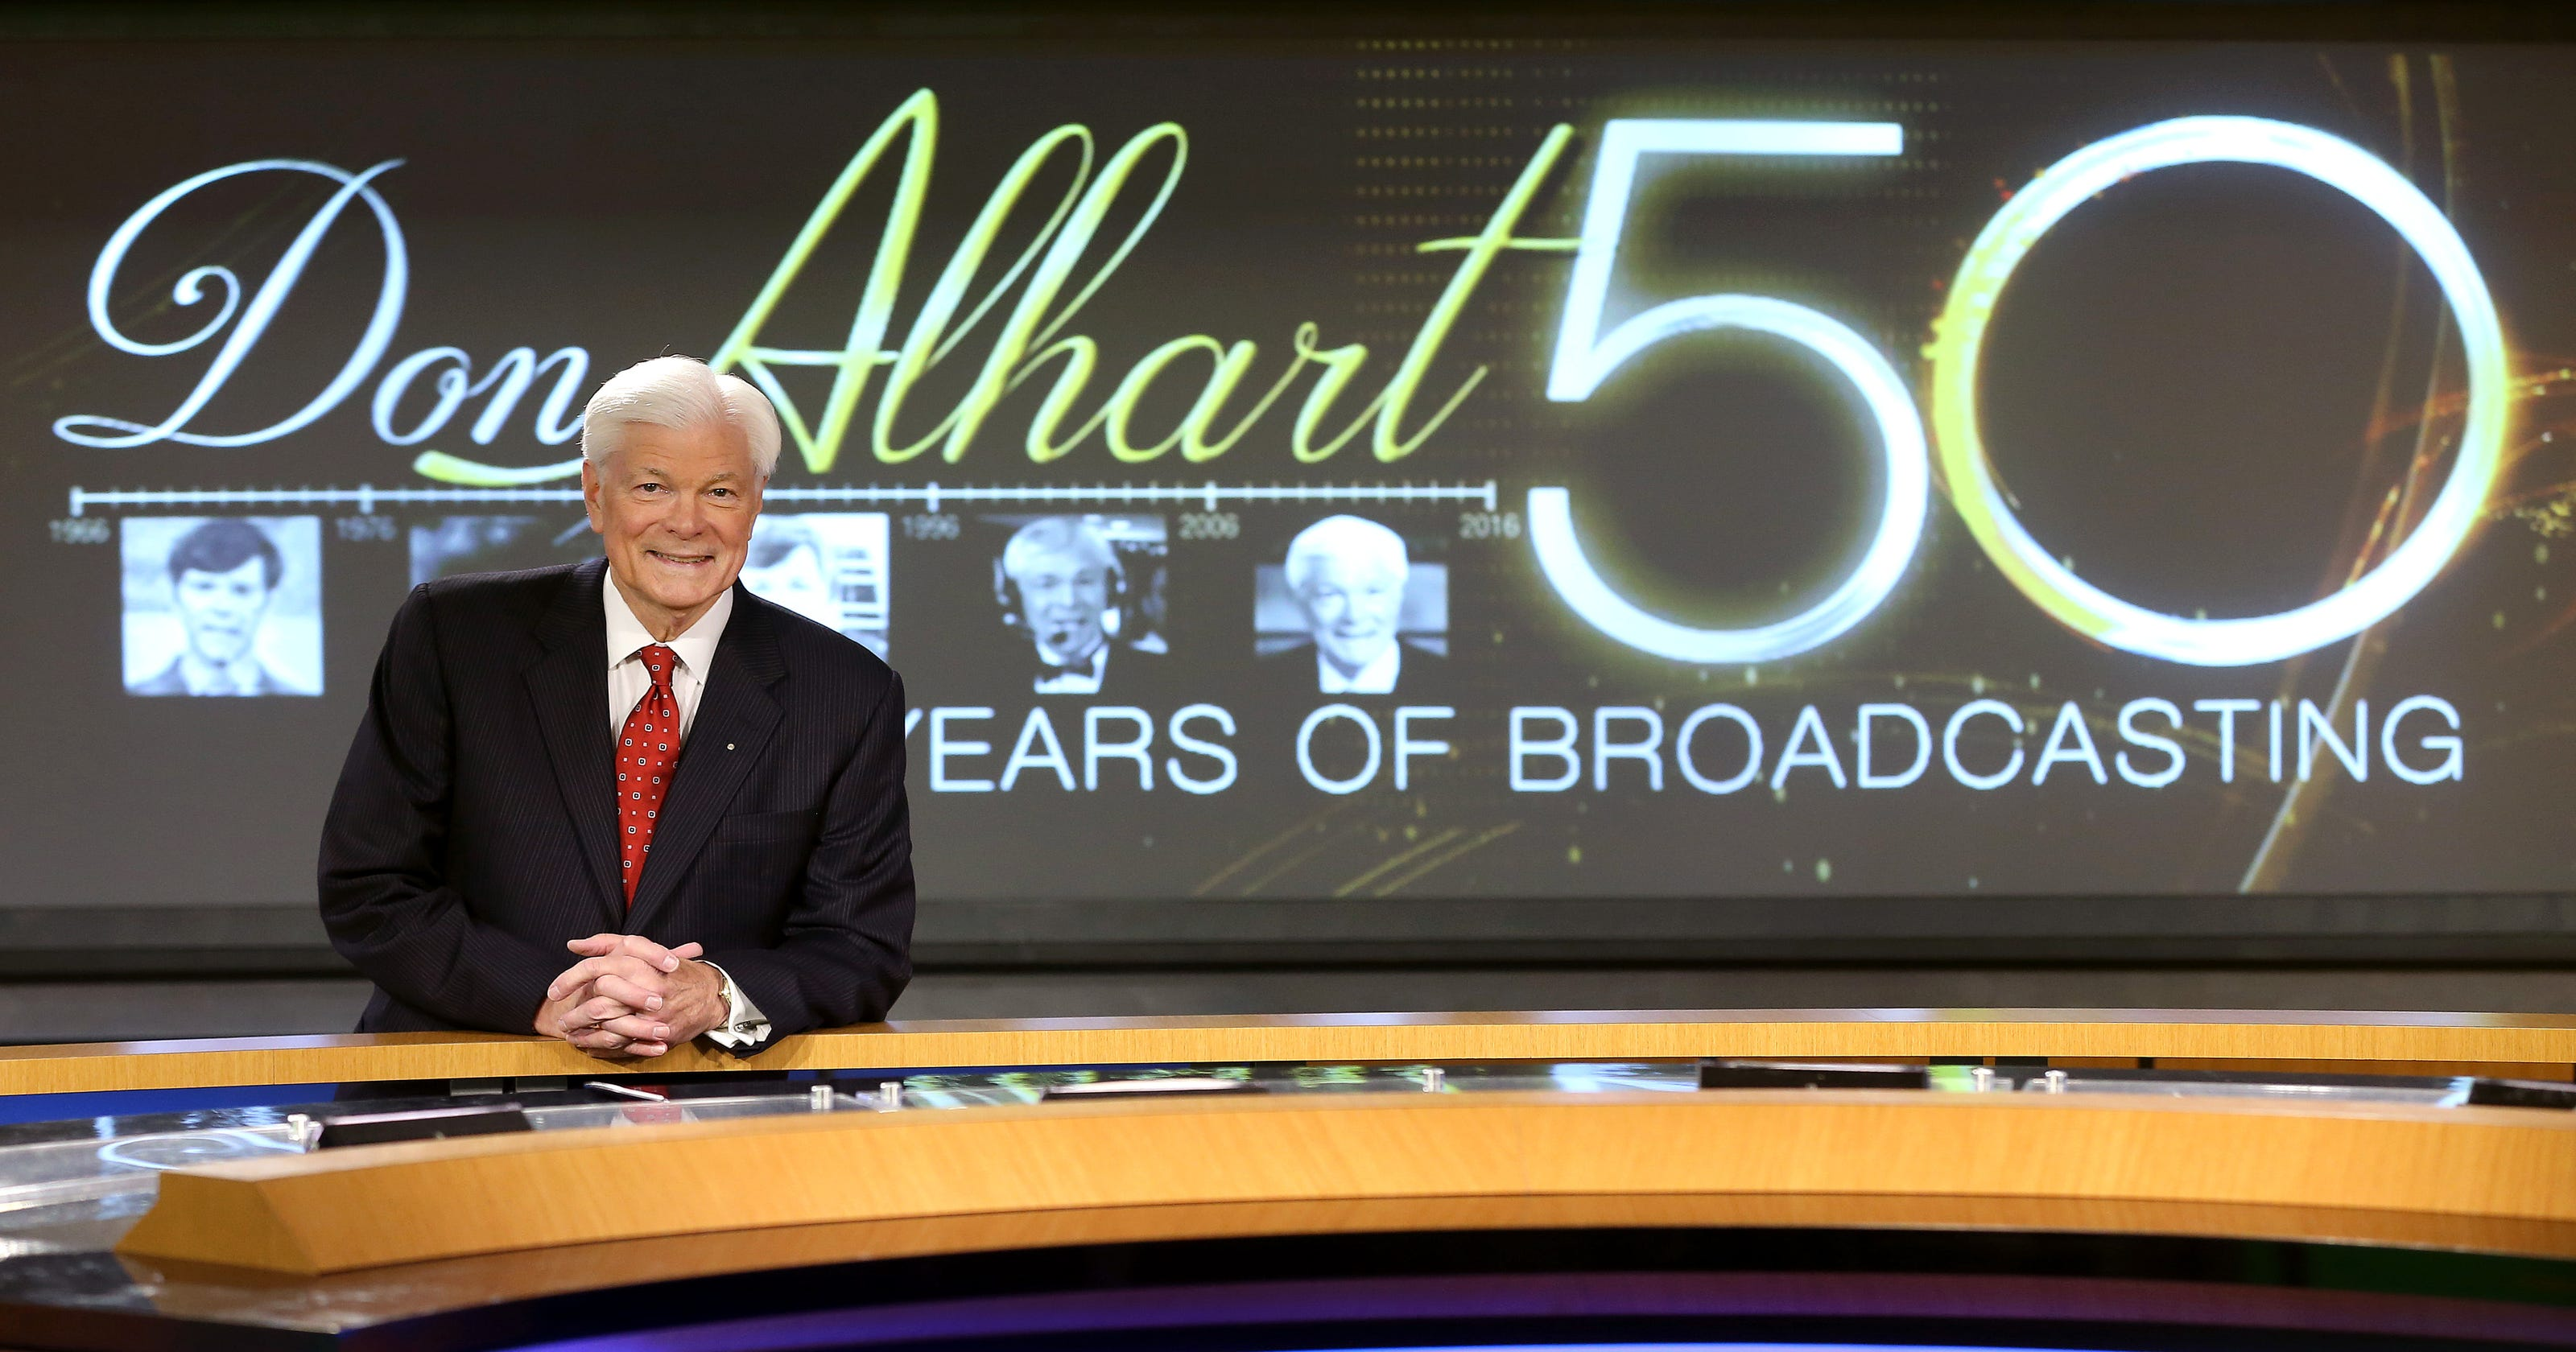 don alhart: 50 years on the air